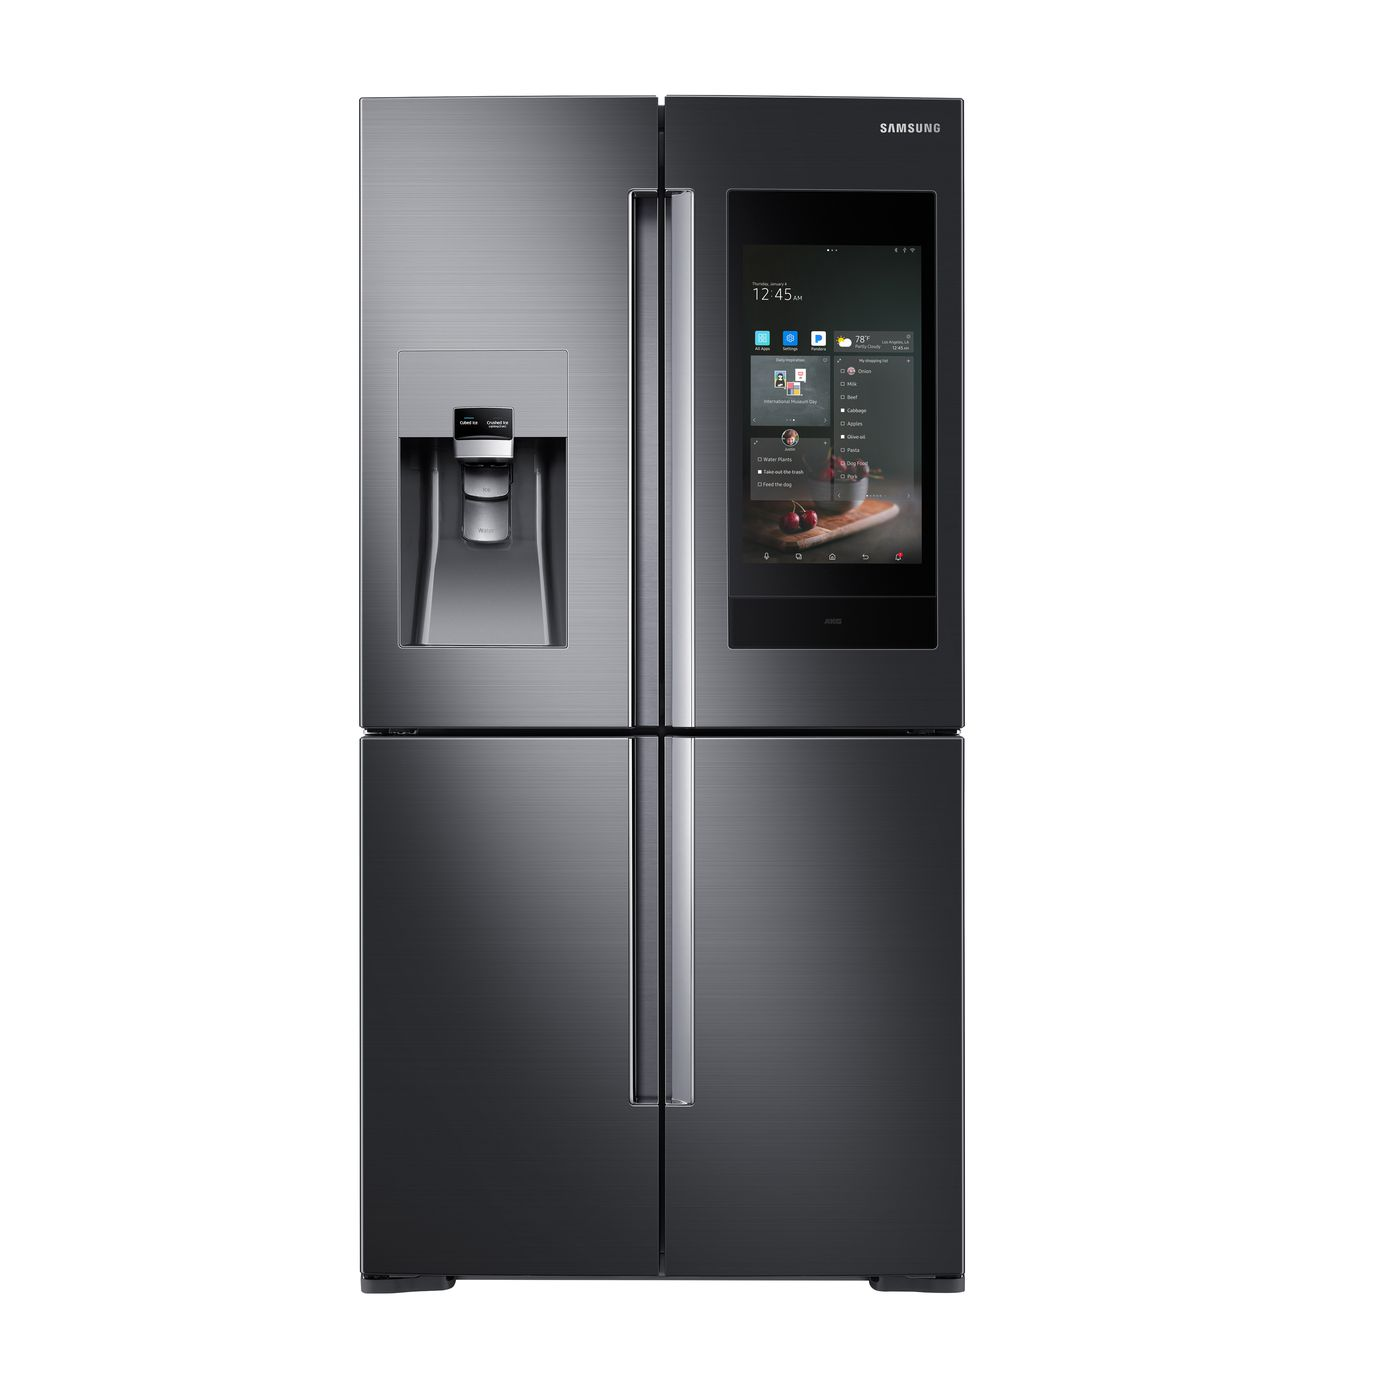 Samsung Family Hub Review >> Samsung S New Smart Refrigerator Has Bixby Akg Speakers And Can